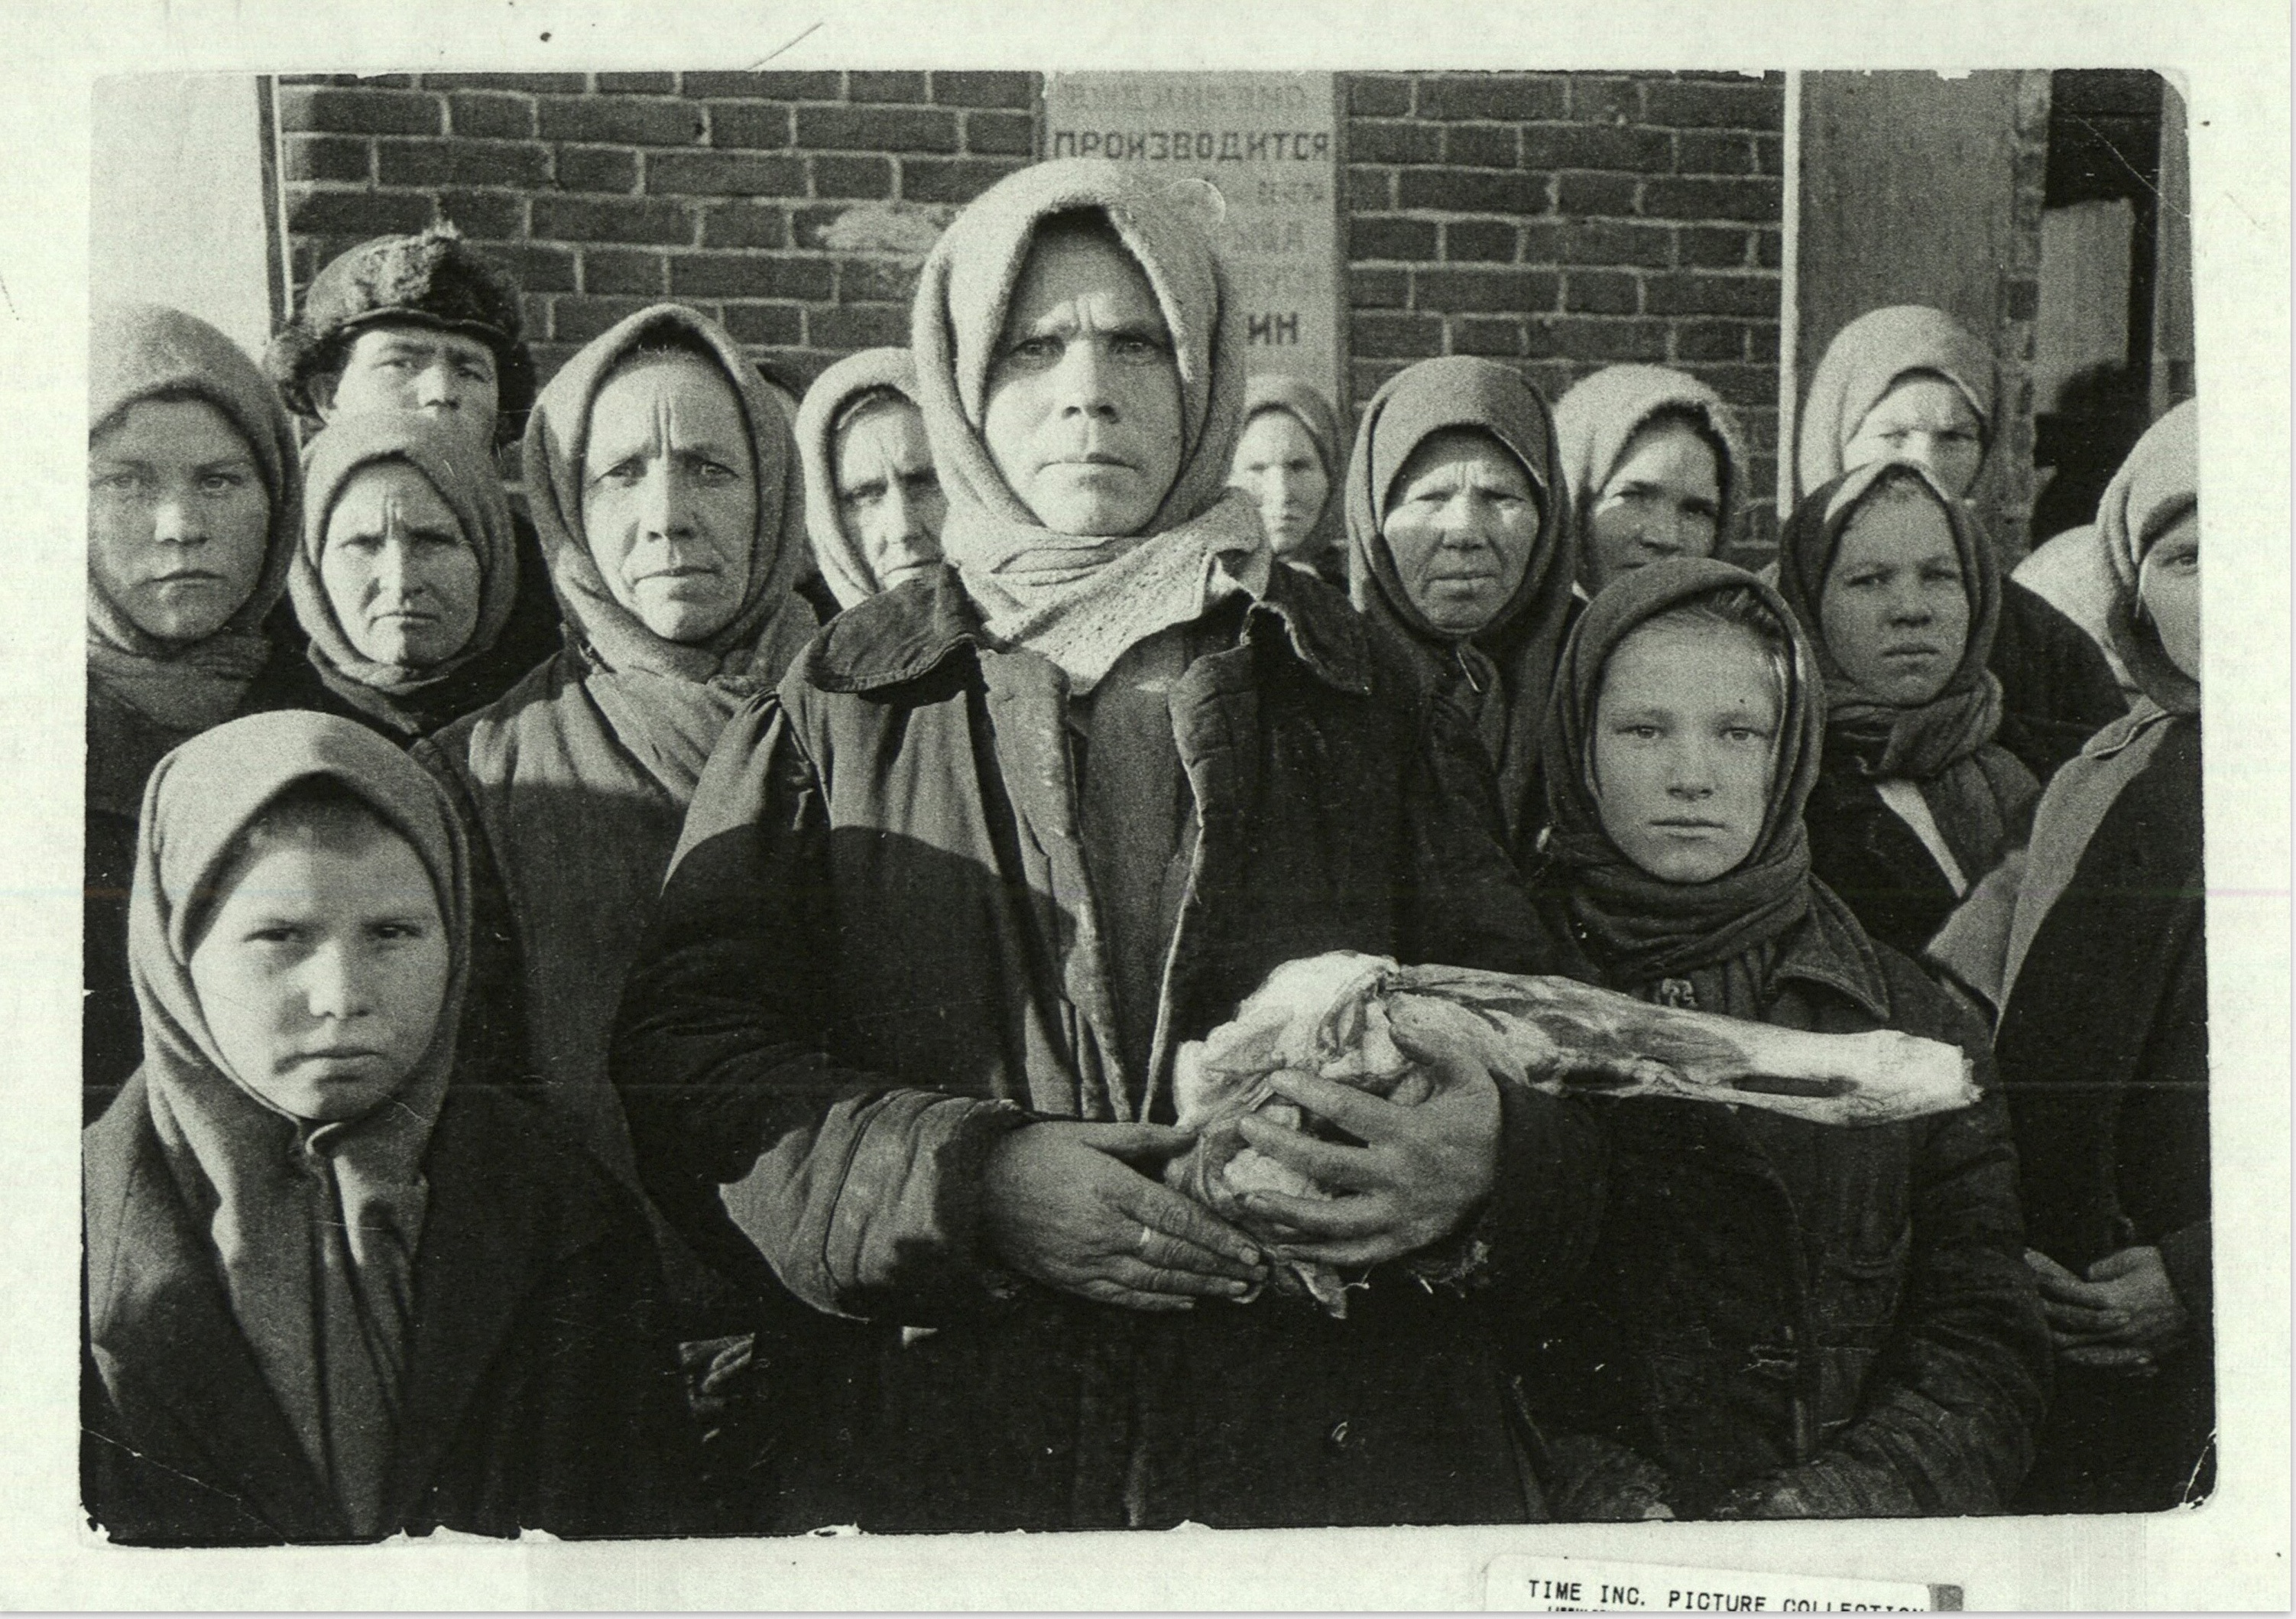 margaret-bourke-white-russian-woman-grimly-holding-a-slab-of-meat-as-other-peasant-women-staunchly-stand-by-in-siberia-magnitogorsk-1931